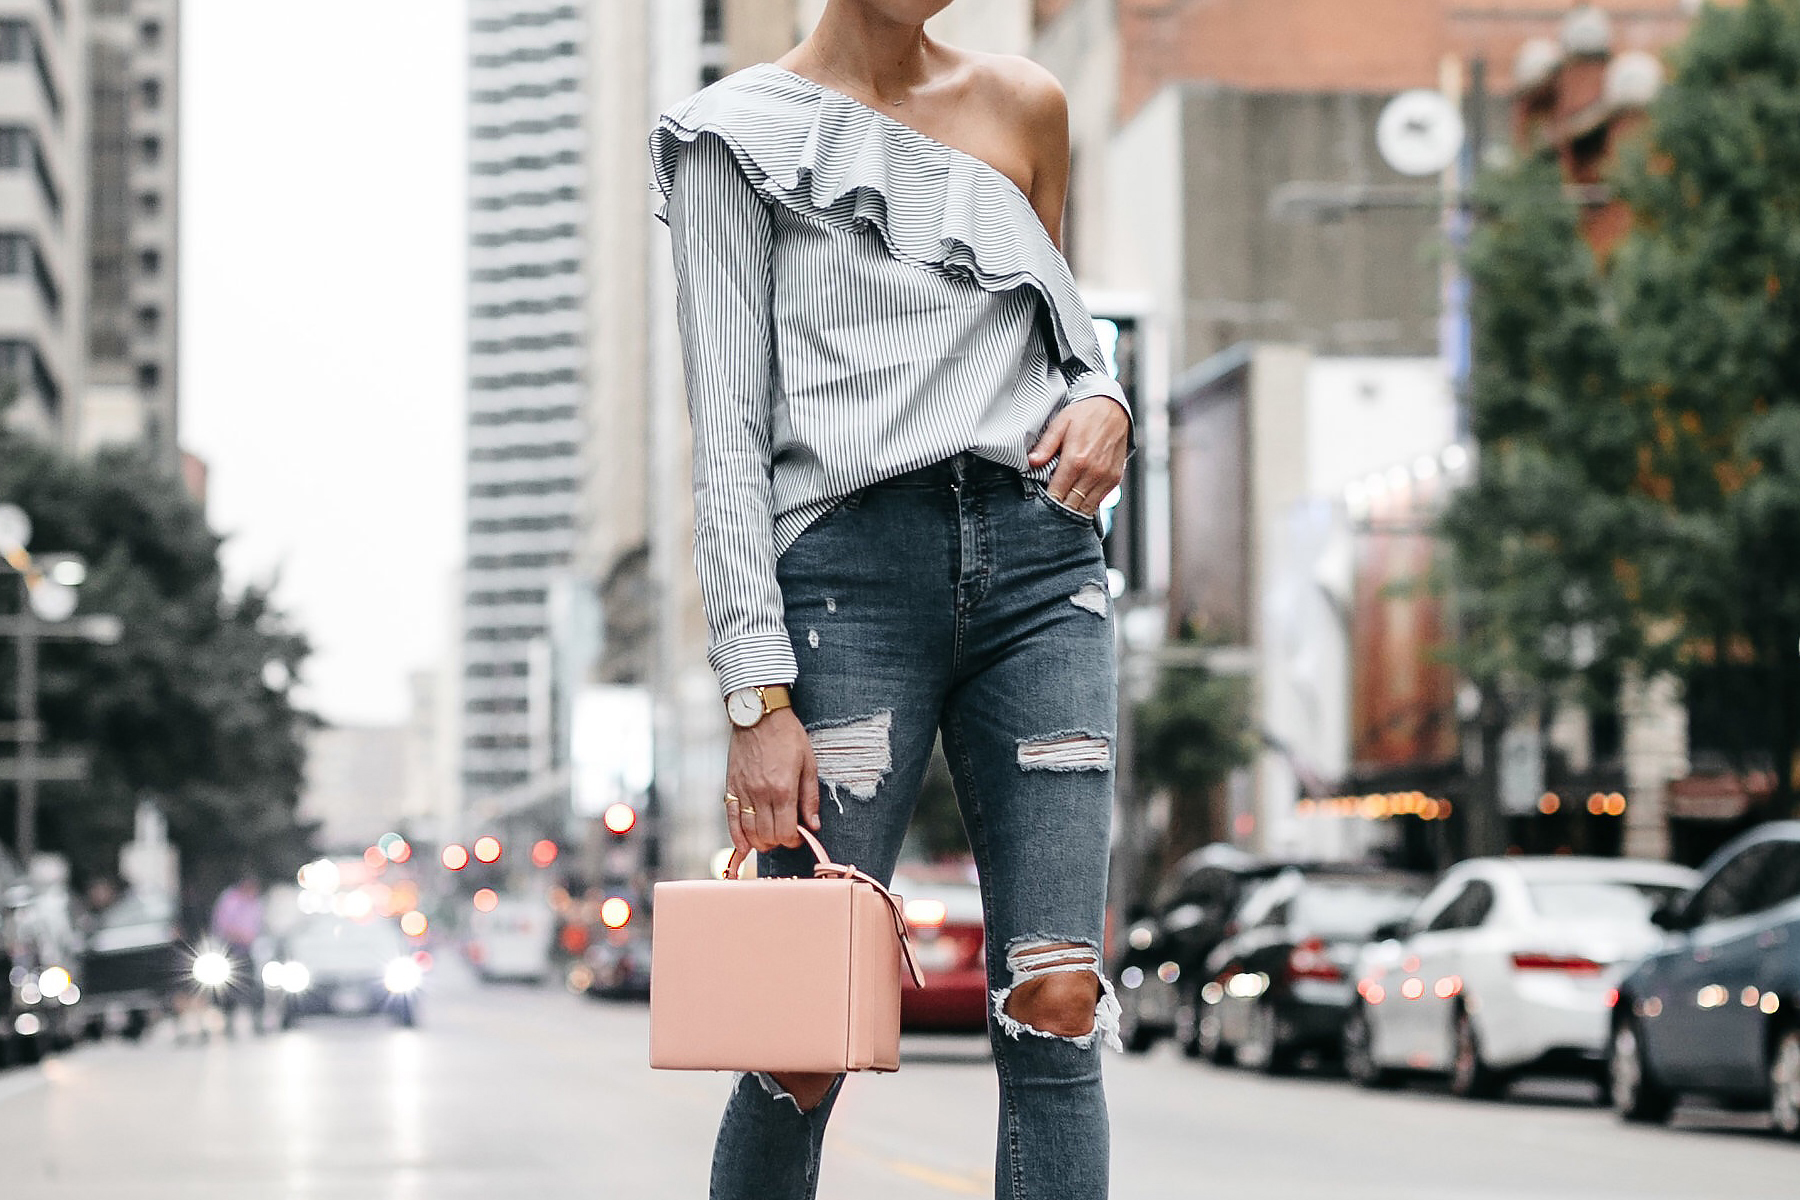 Club Monaco Striped One Shoulder Ruffle Top Mark Cross Pink Saffiano Handbag Fashion Jackson Dallas Blogger Fashion Blogger Street Style